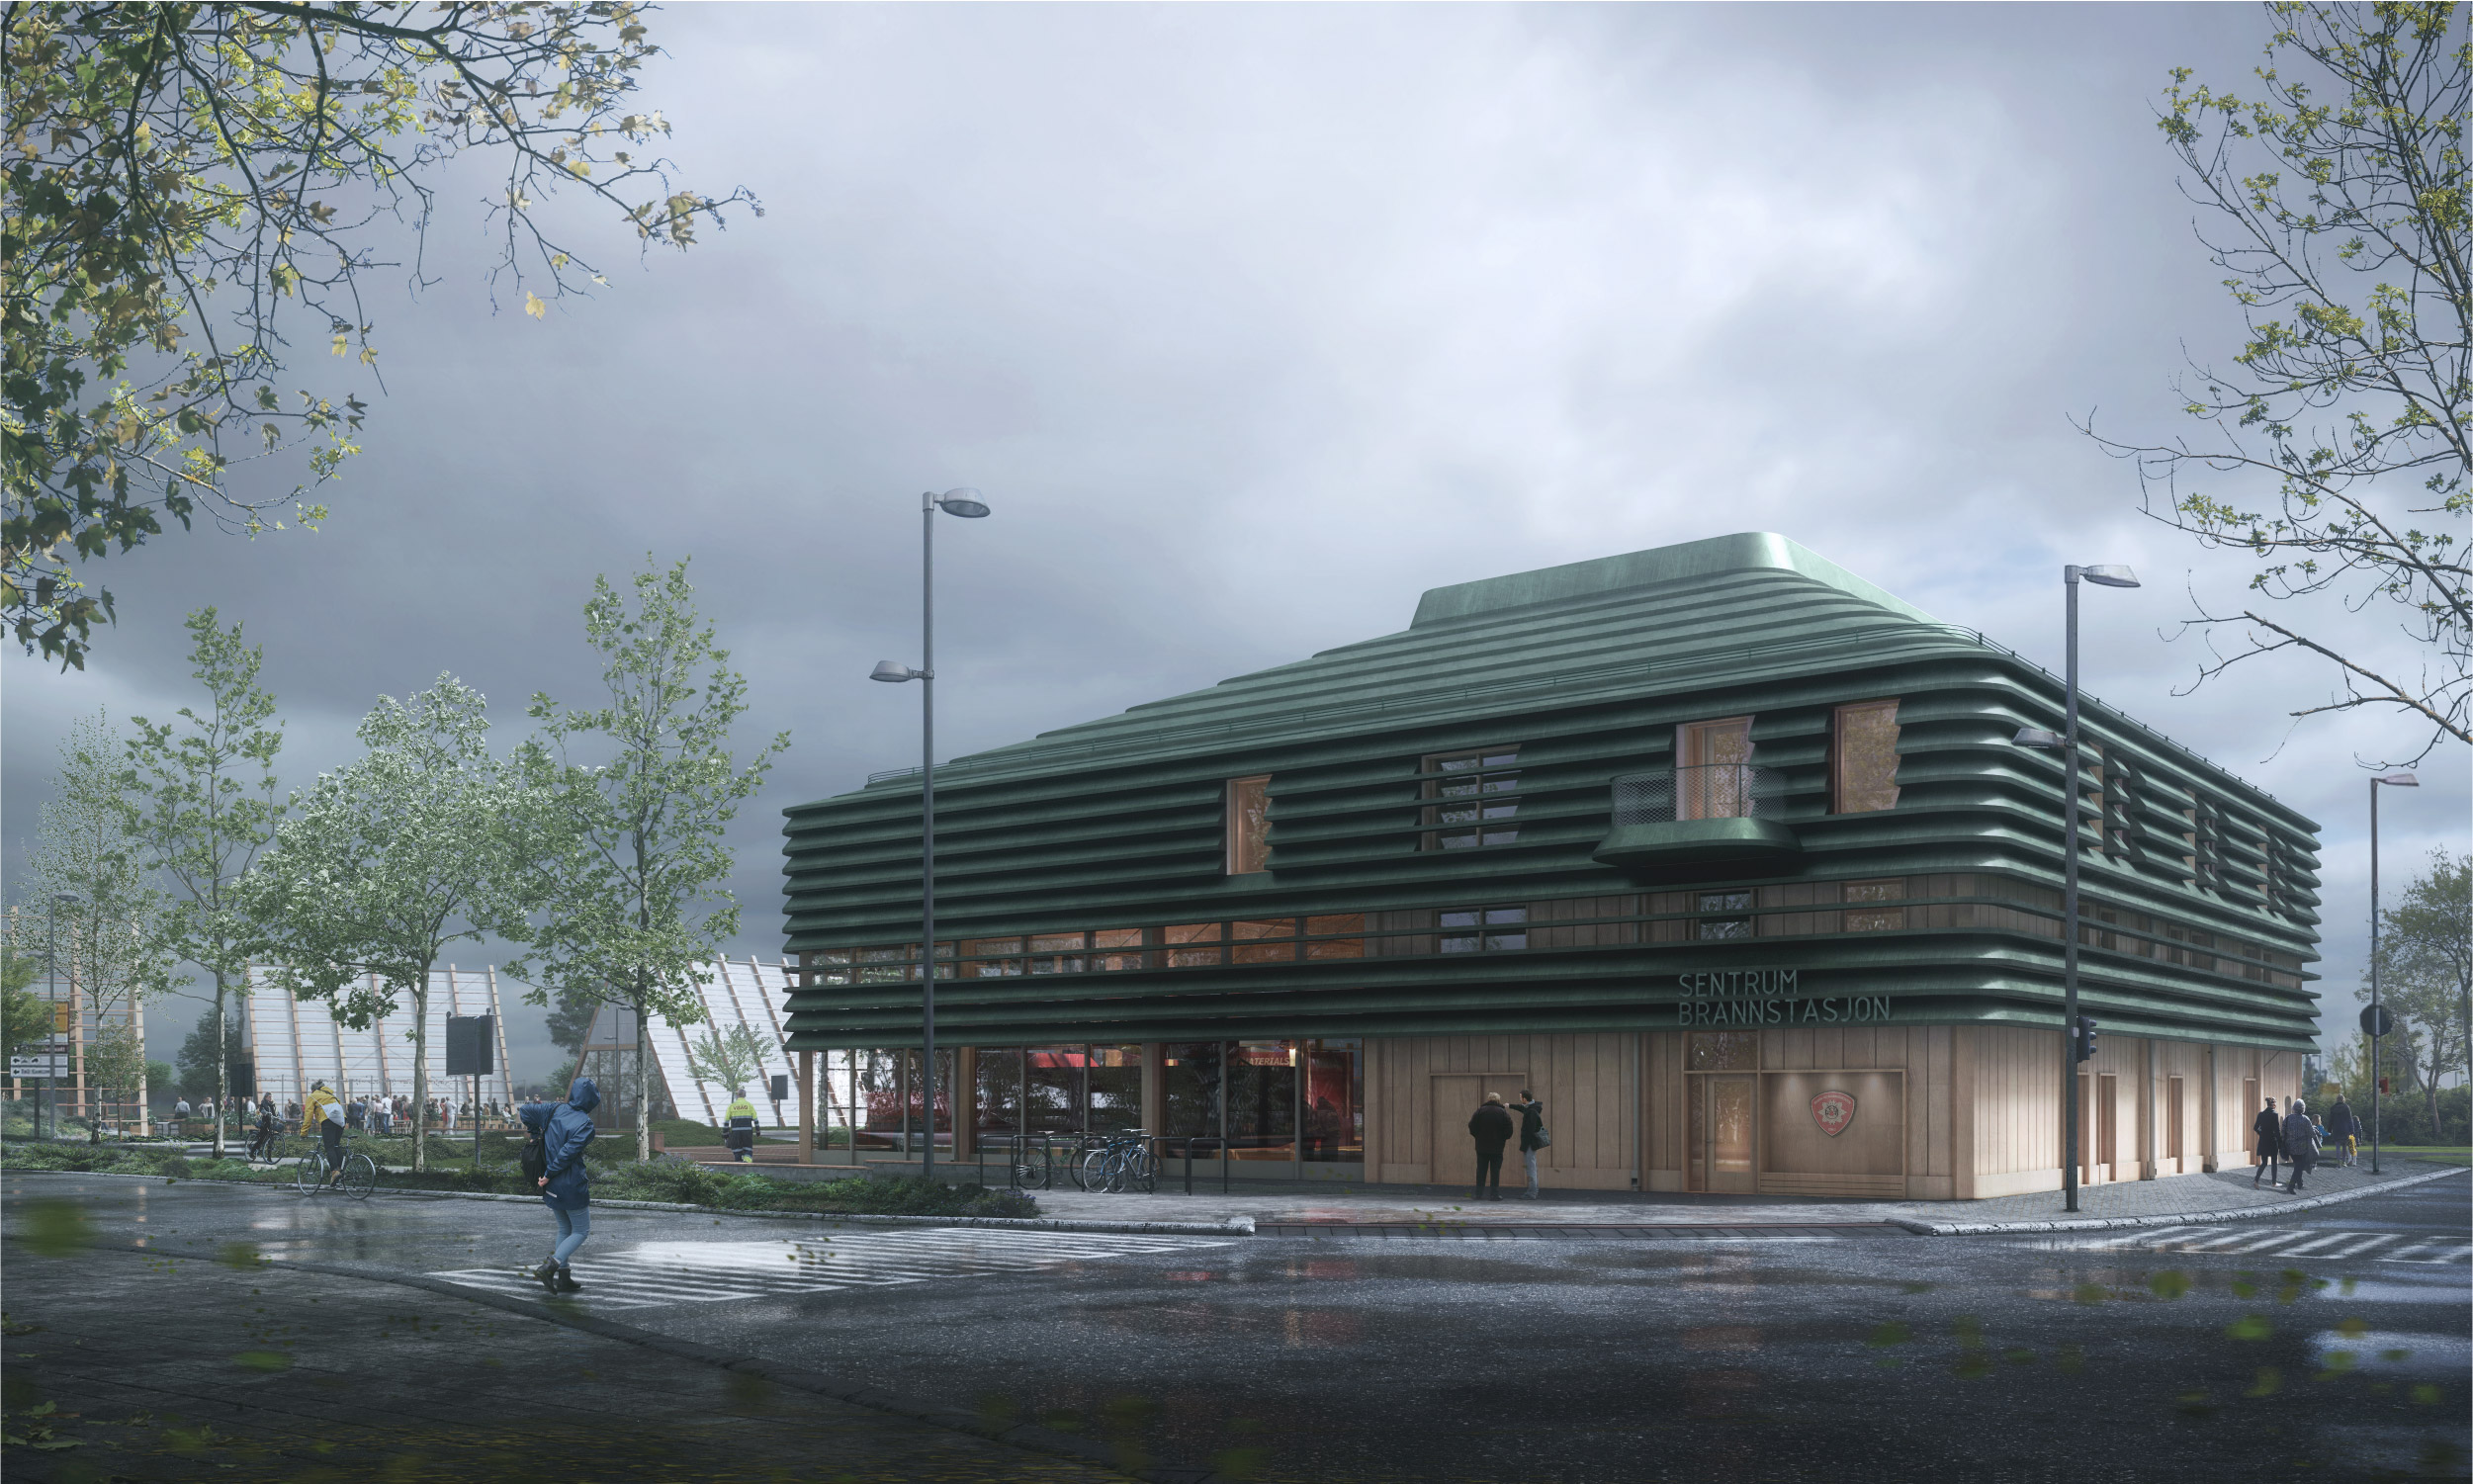 Utopia_oslo_firestation_street-01